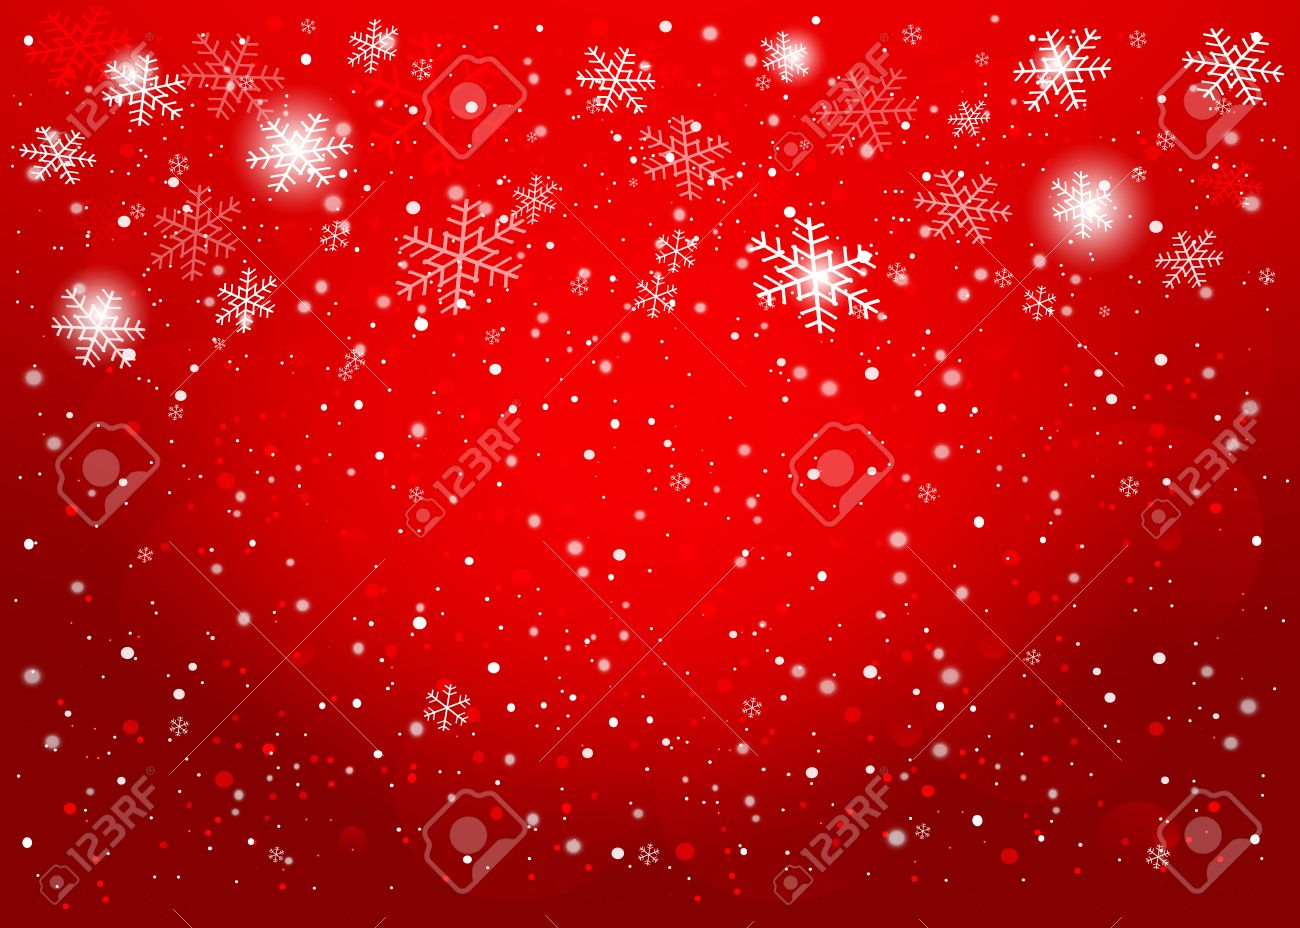 Red Christmas Background.Red Christmas Background Vector Eps10